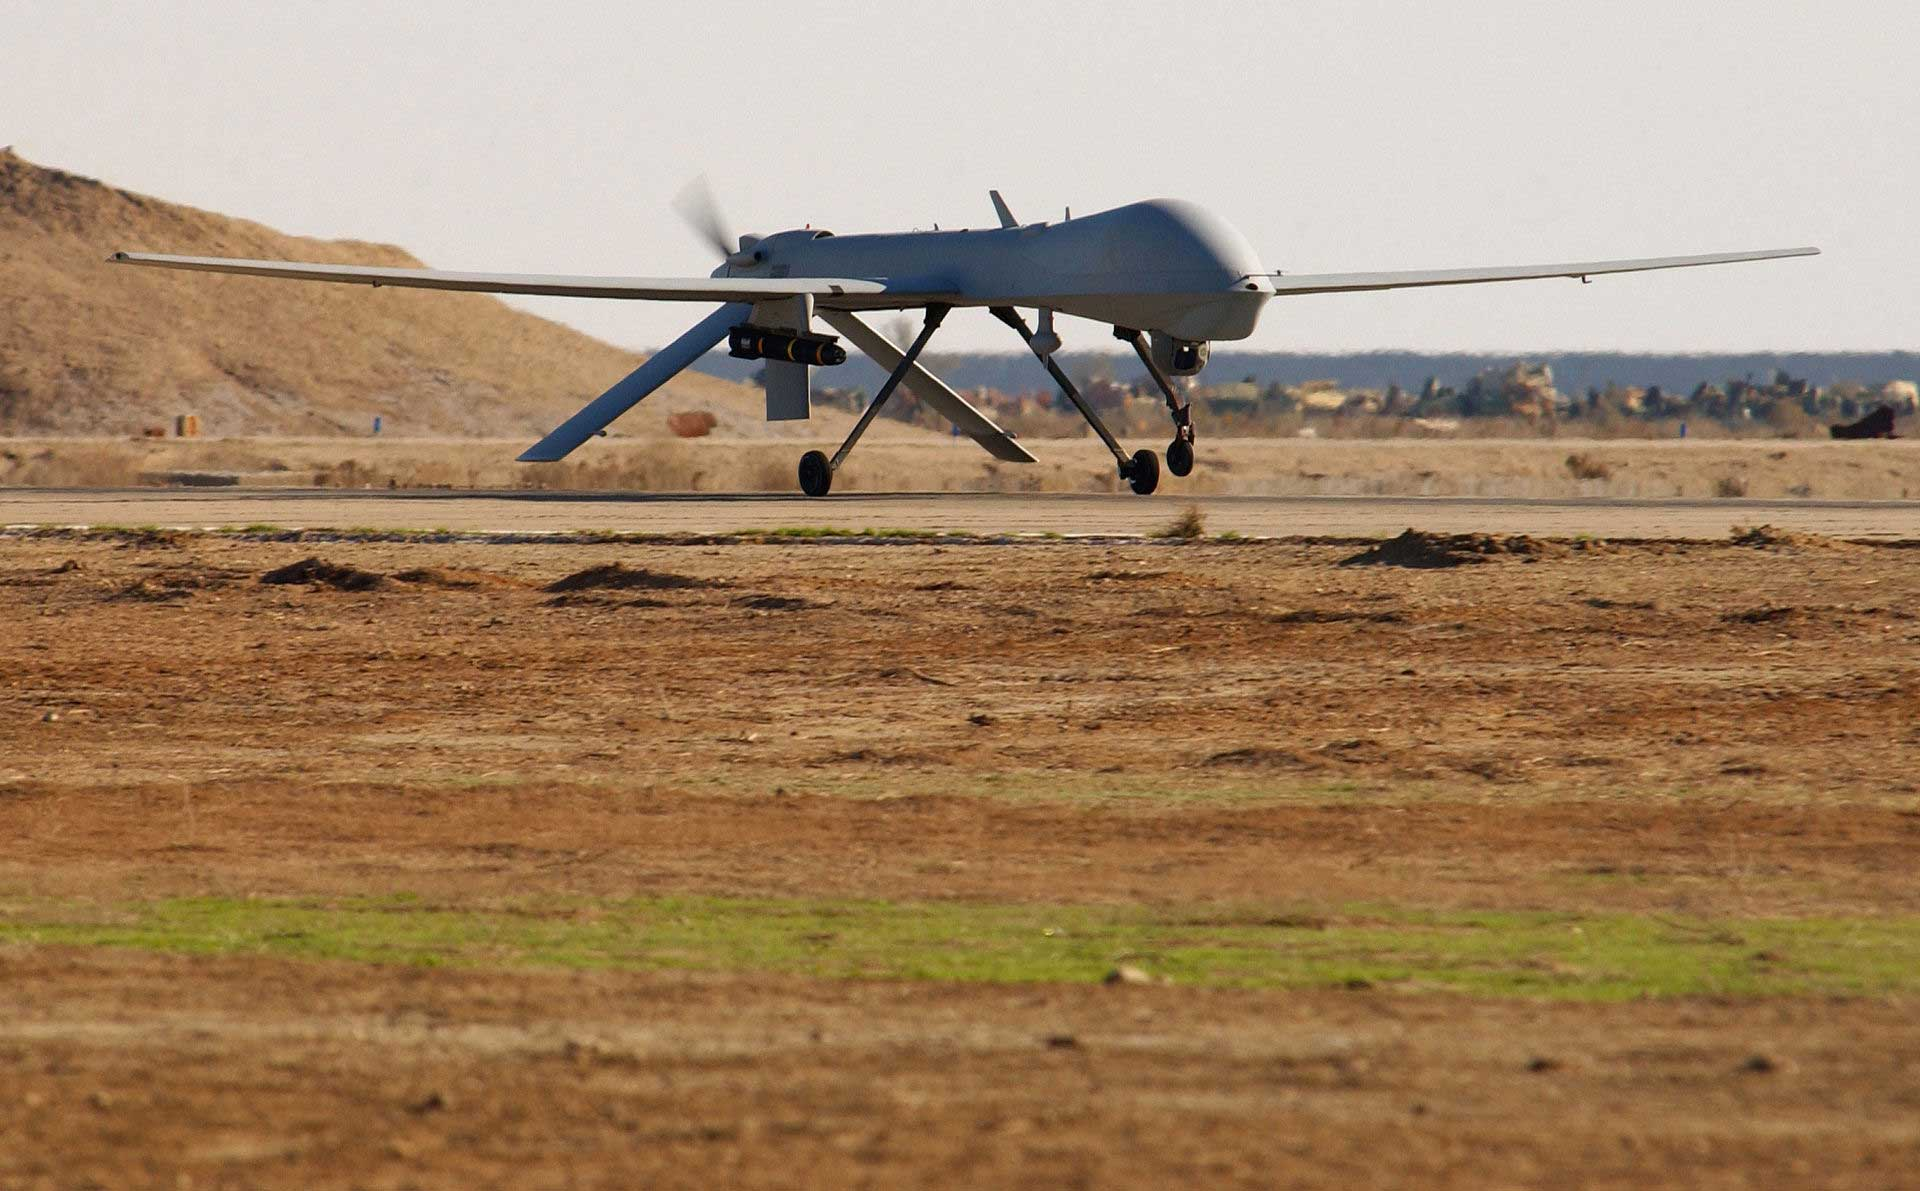 Predator border patrol drones are being used to patrol the border between the US & Mexico, and will be used to survey the Canadian border by 2015